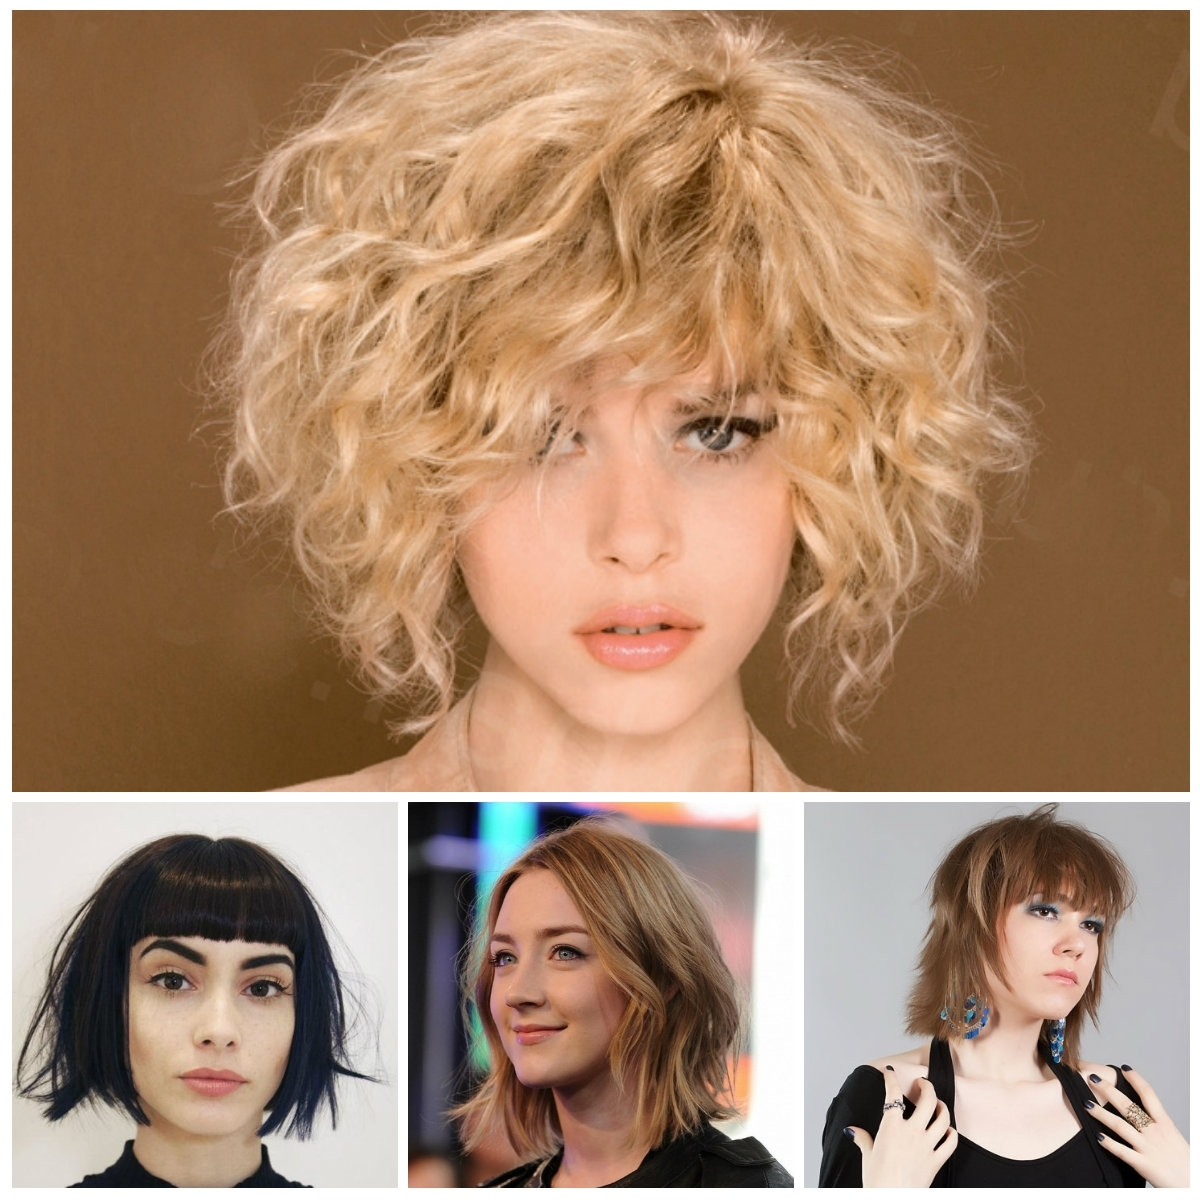 Shaggy Bob Haircut Ideas – New Hairstyles 2017 For Long, Short And With Well Liked Shaggy Bob Hairstyles (View 8 of 15)